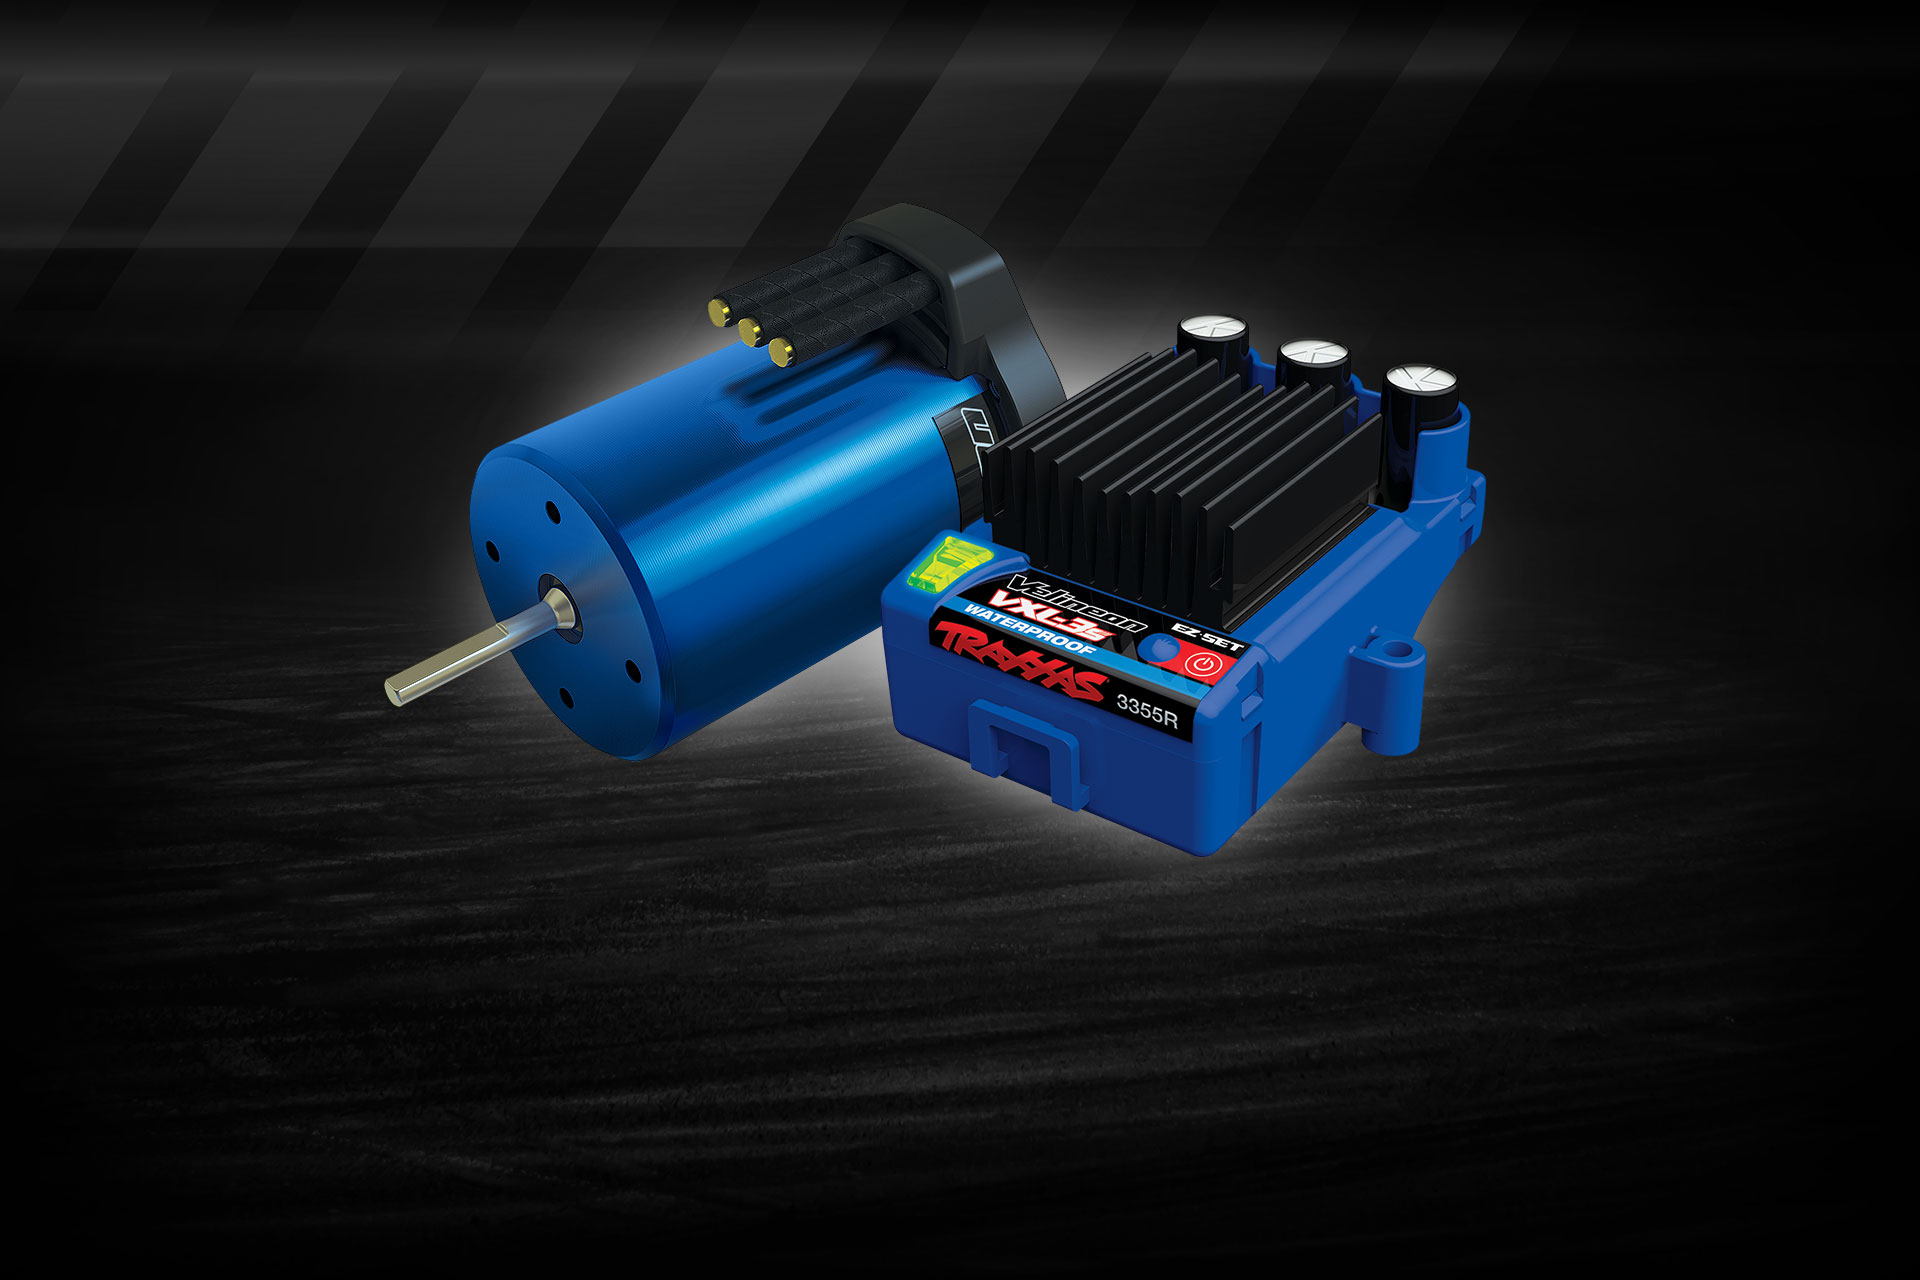 https://traxxas.com/products/landing/drag-slash/images/Overview-Power-System.jpg